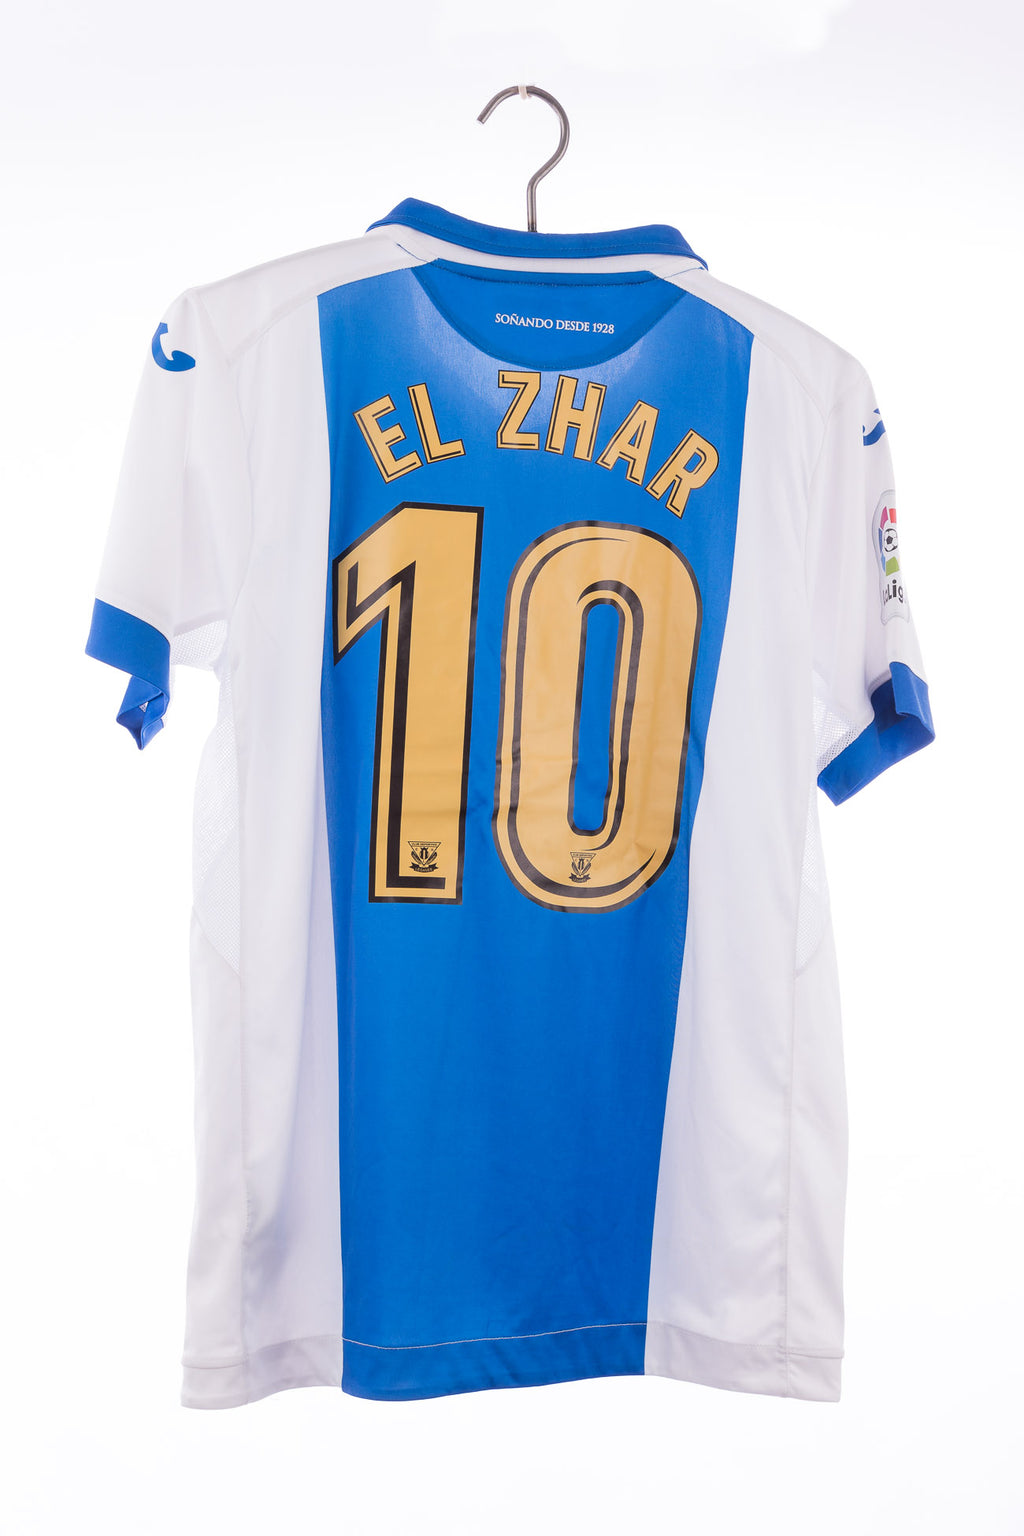 Leganés 2017 - 2018 Joma Home Football Shirt #10 El Zhar